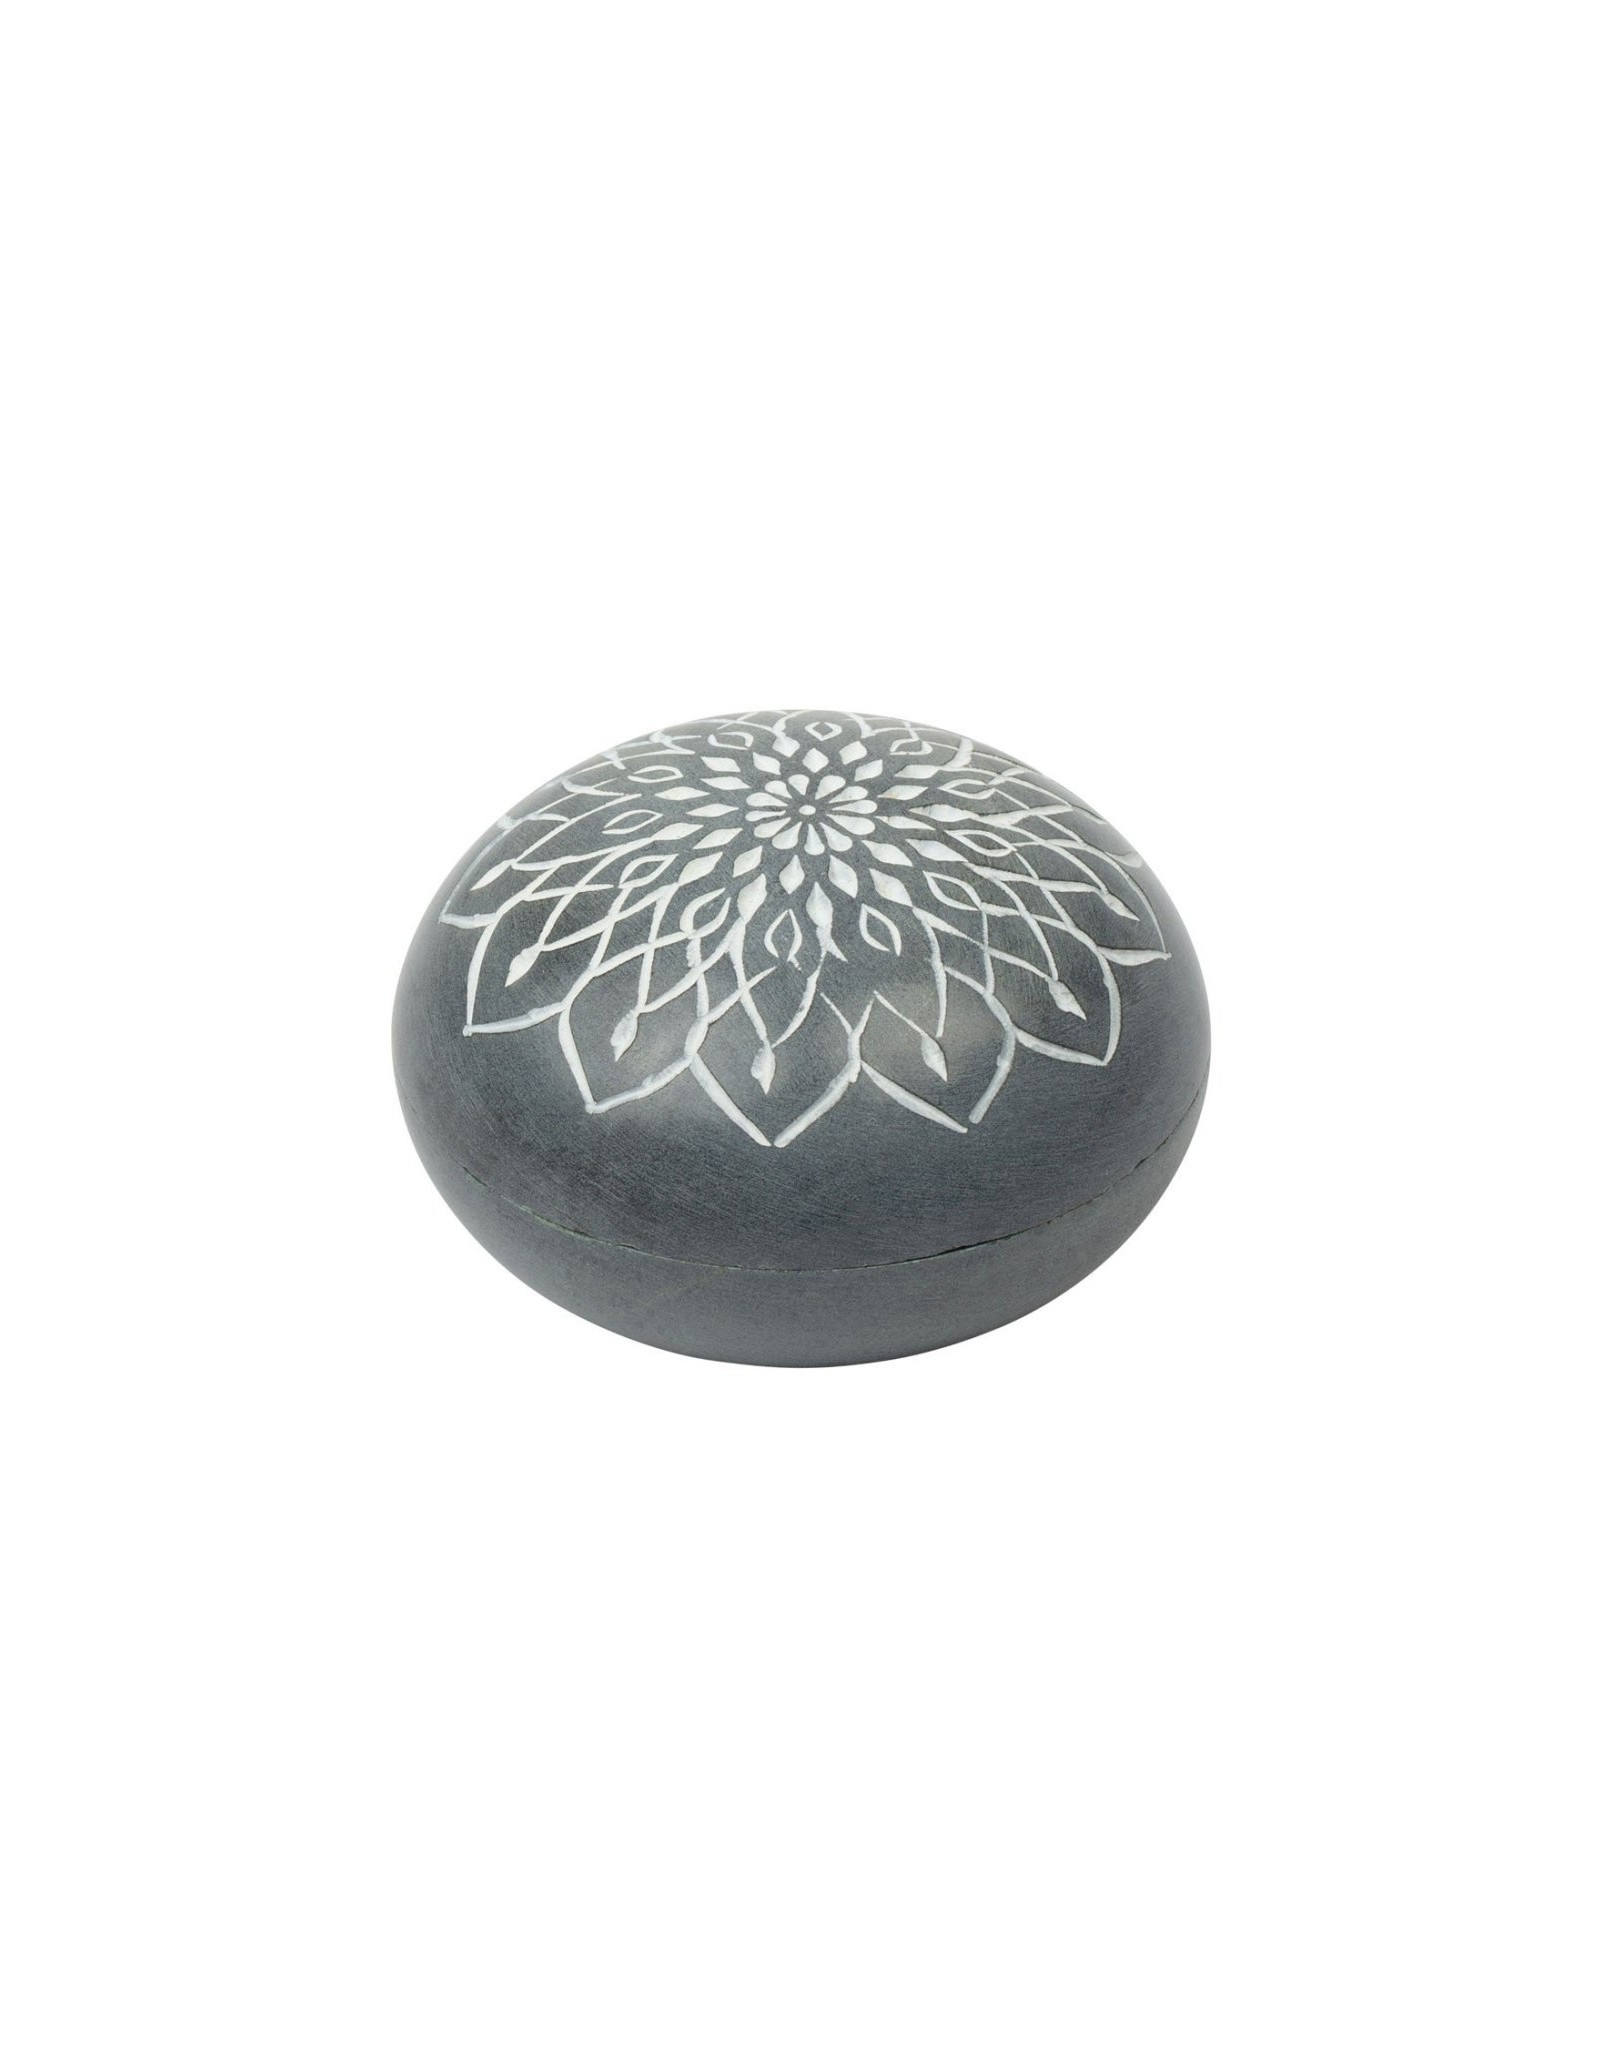 Stone Incense & Candle Holder, India